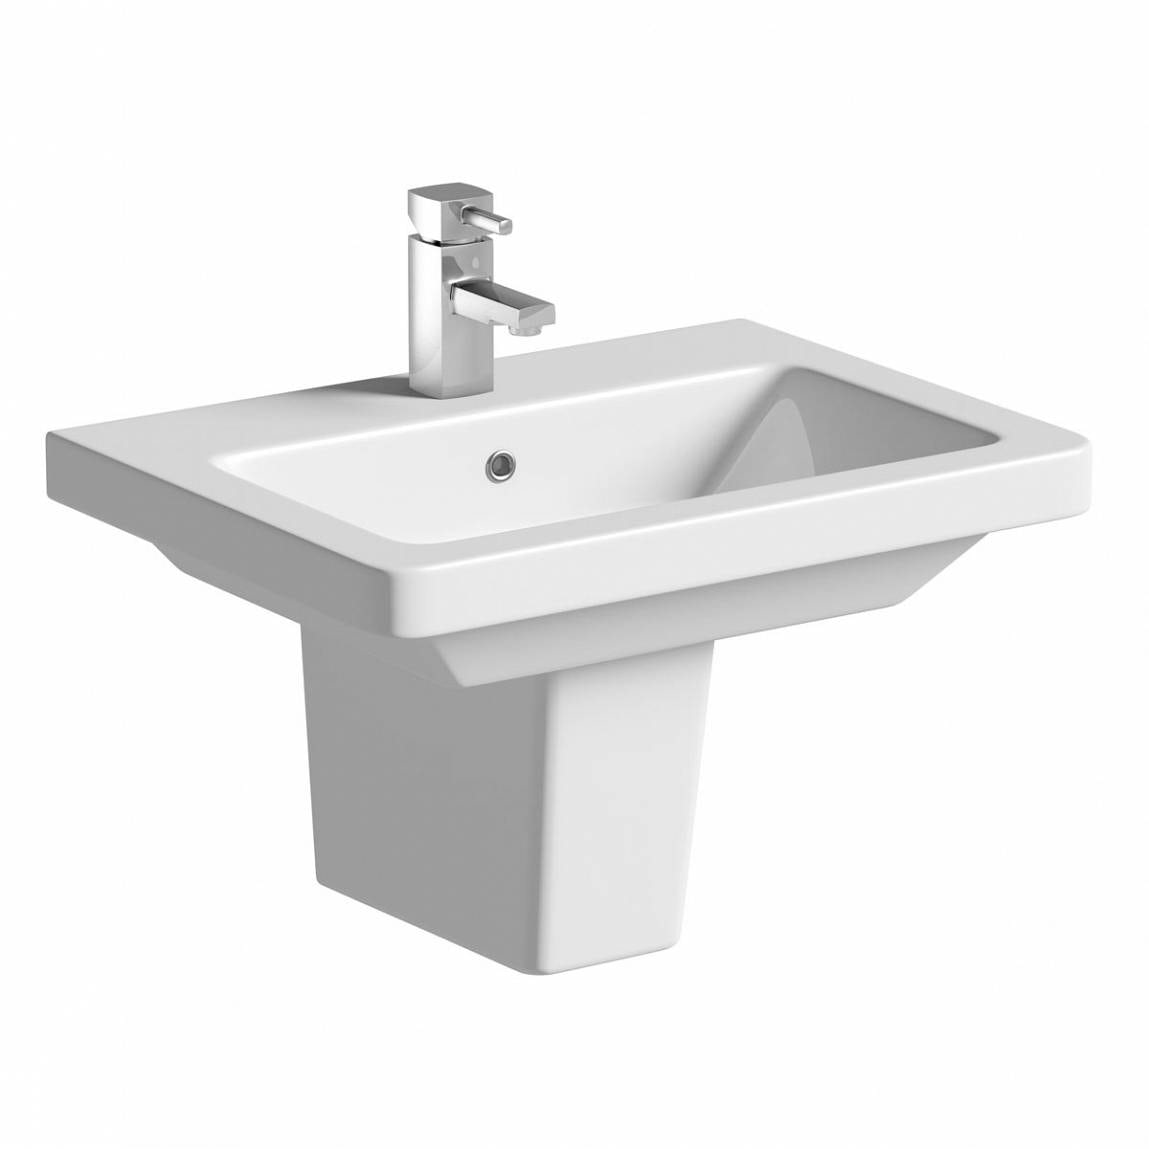 Mode Cooper 1 tap hole semi pedestal basin 550mm with waste